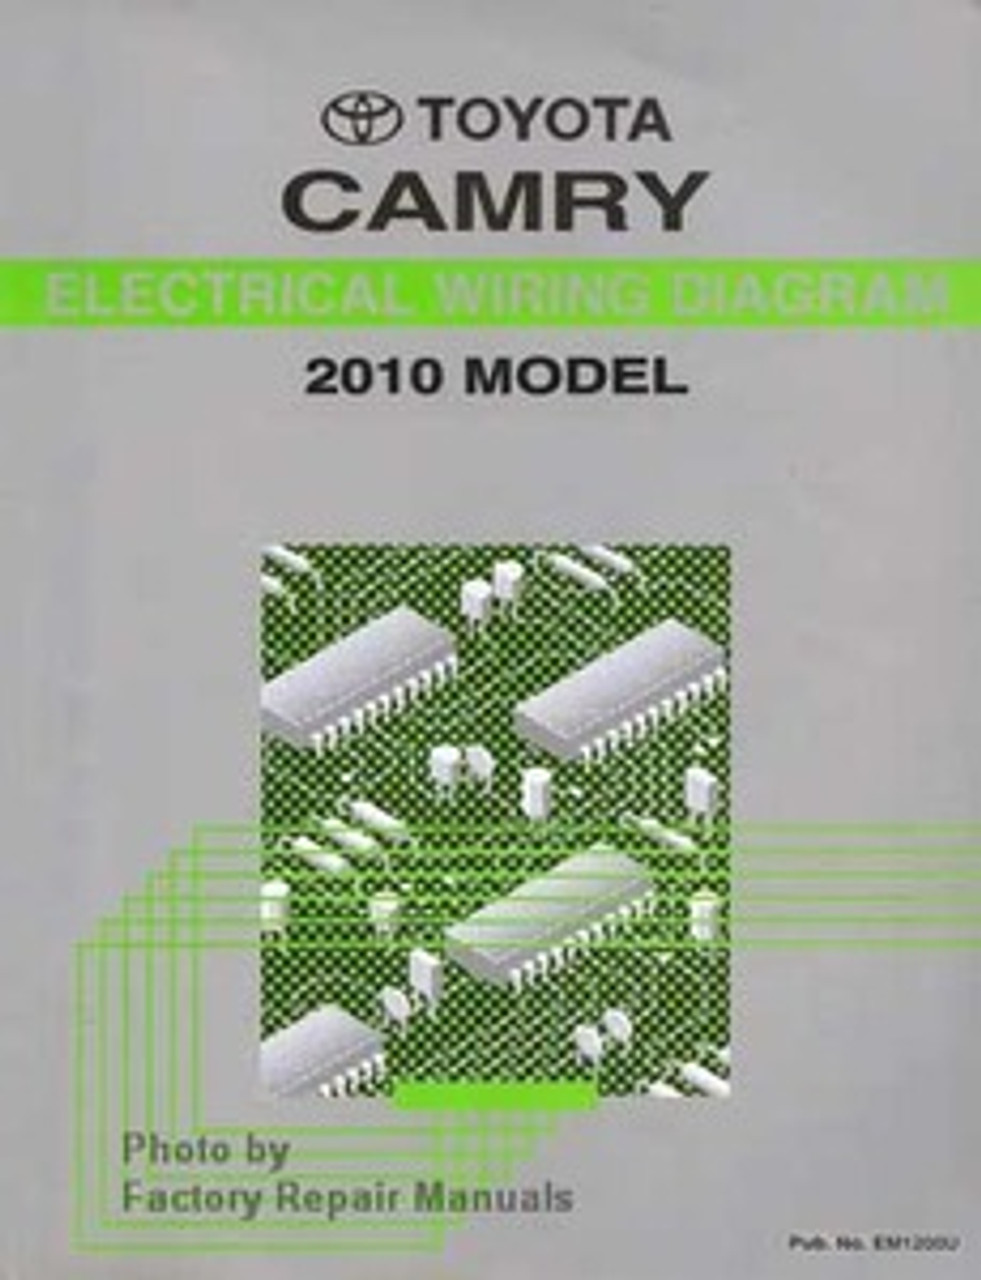 2010 Toyota Camry Electrical Wiring Diagrams